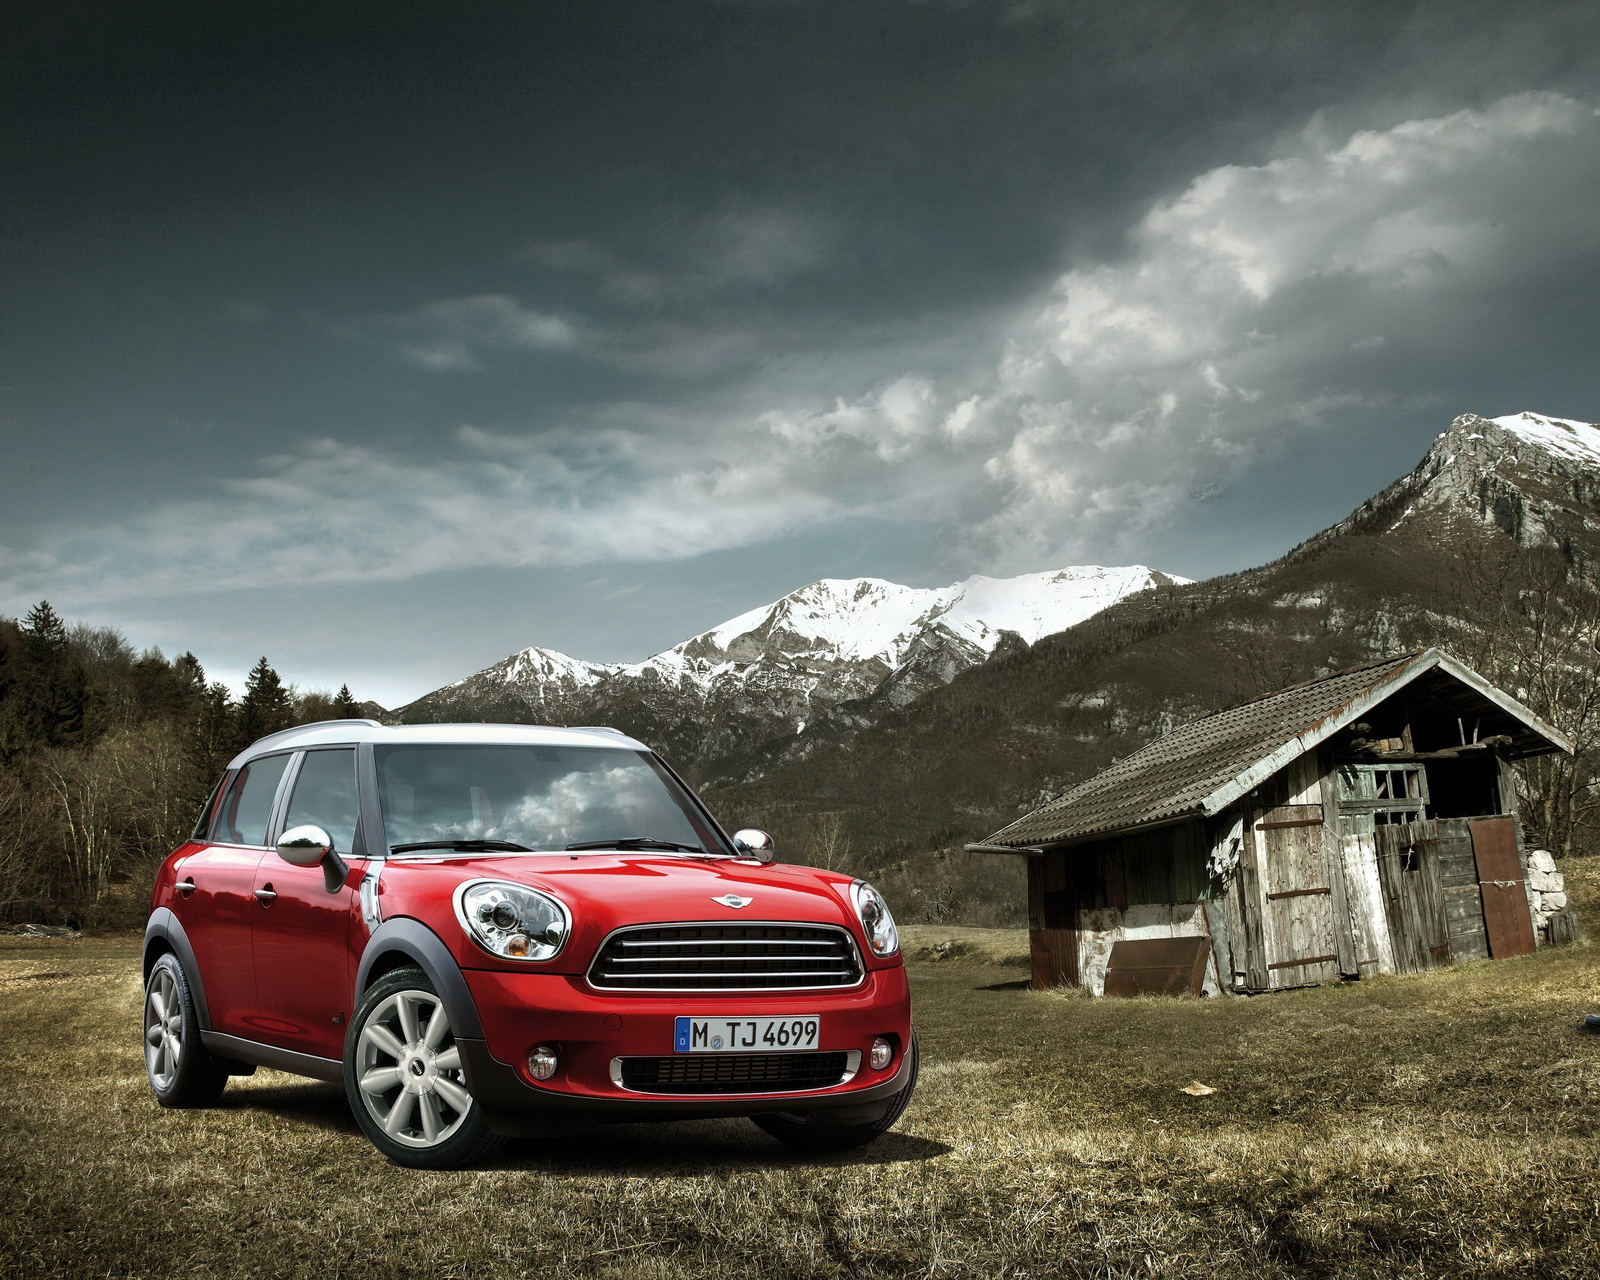 Mini Cooper Wallpaper Auto Motor Sport Wallpaper HD 1600x1280